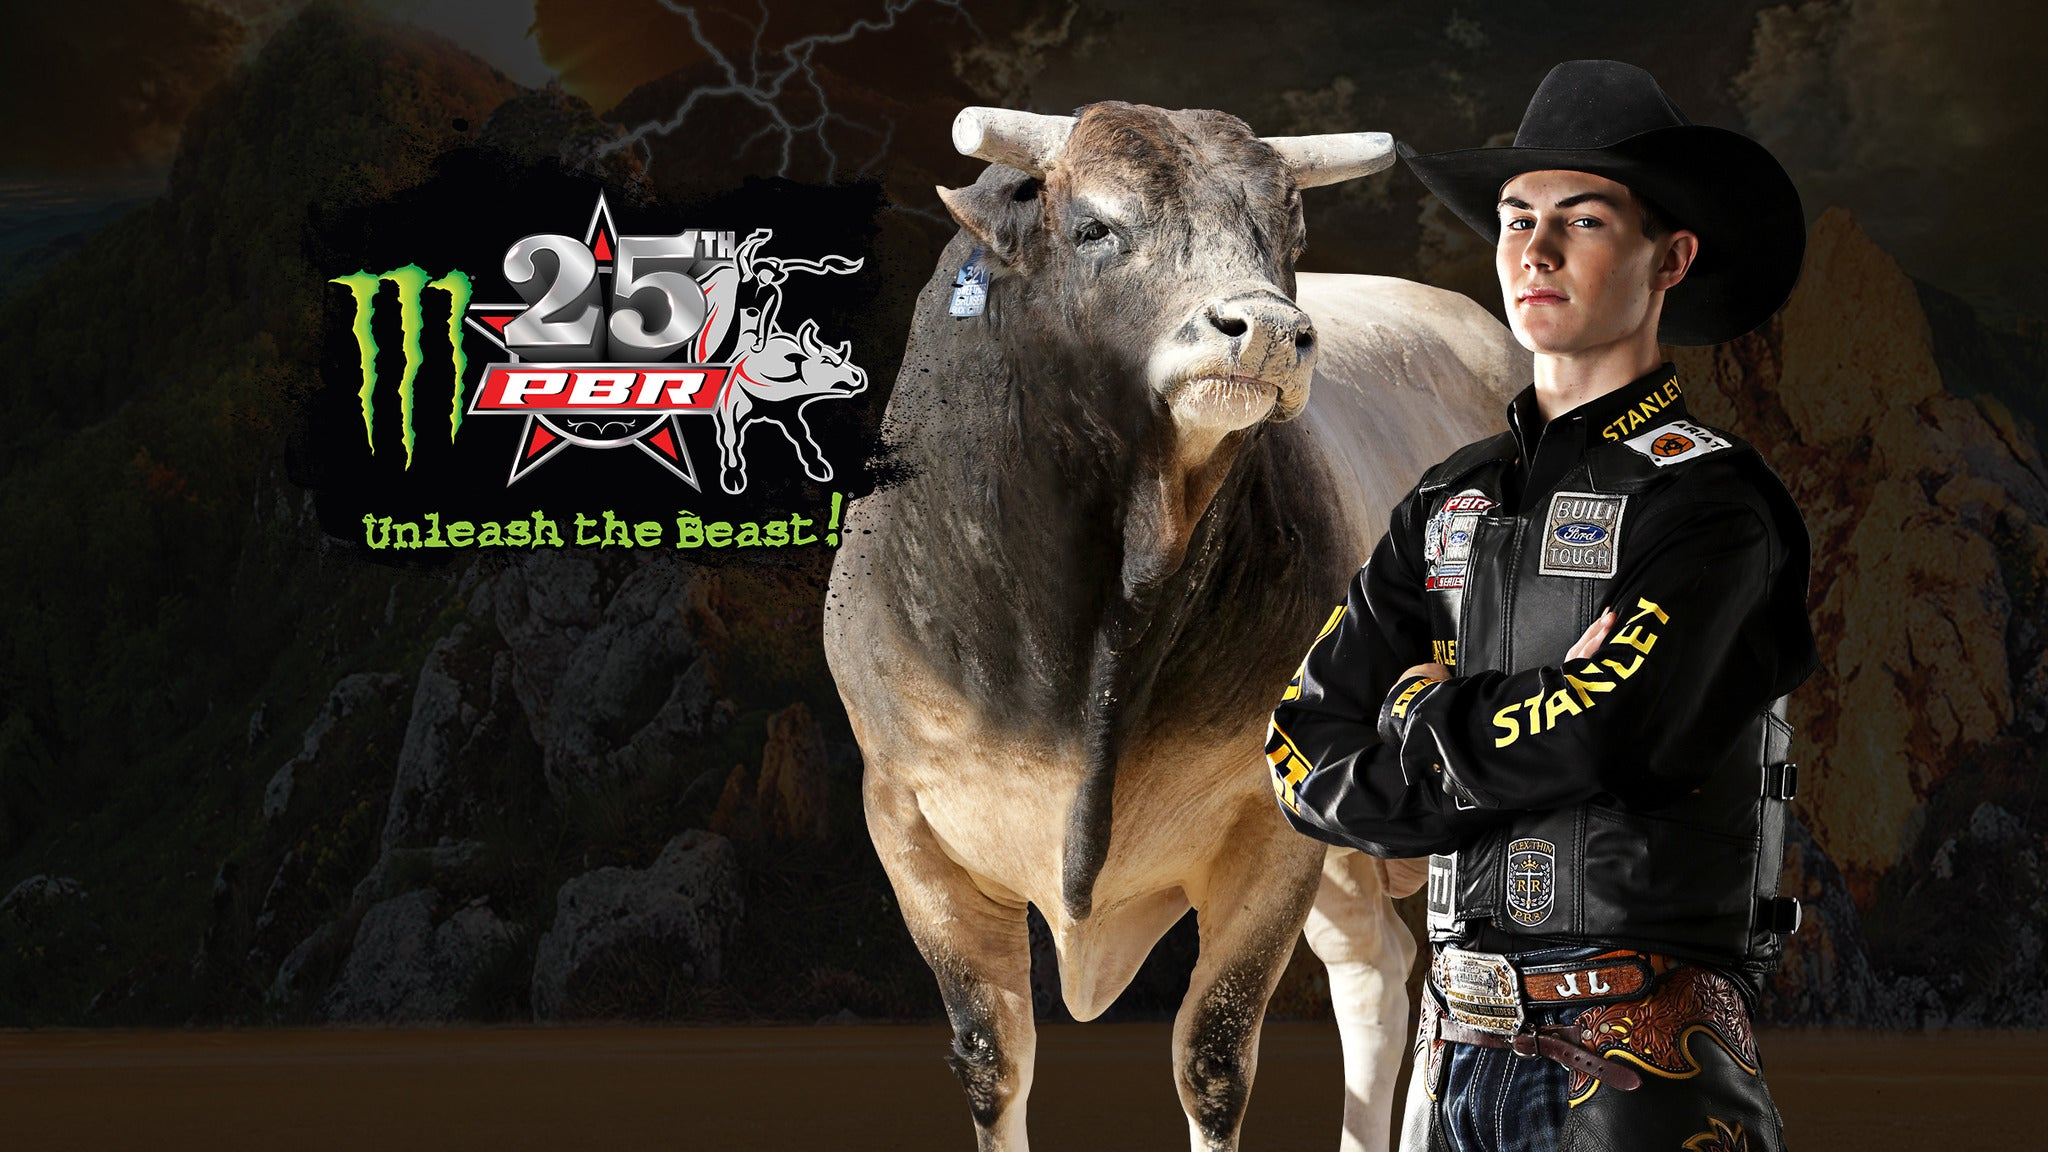 PBR: Unleash the Beast at Bridgestone Arena